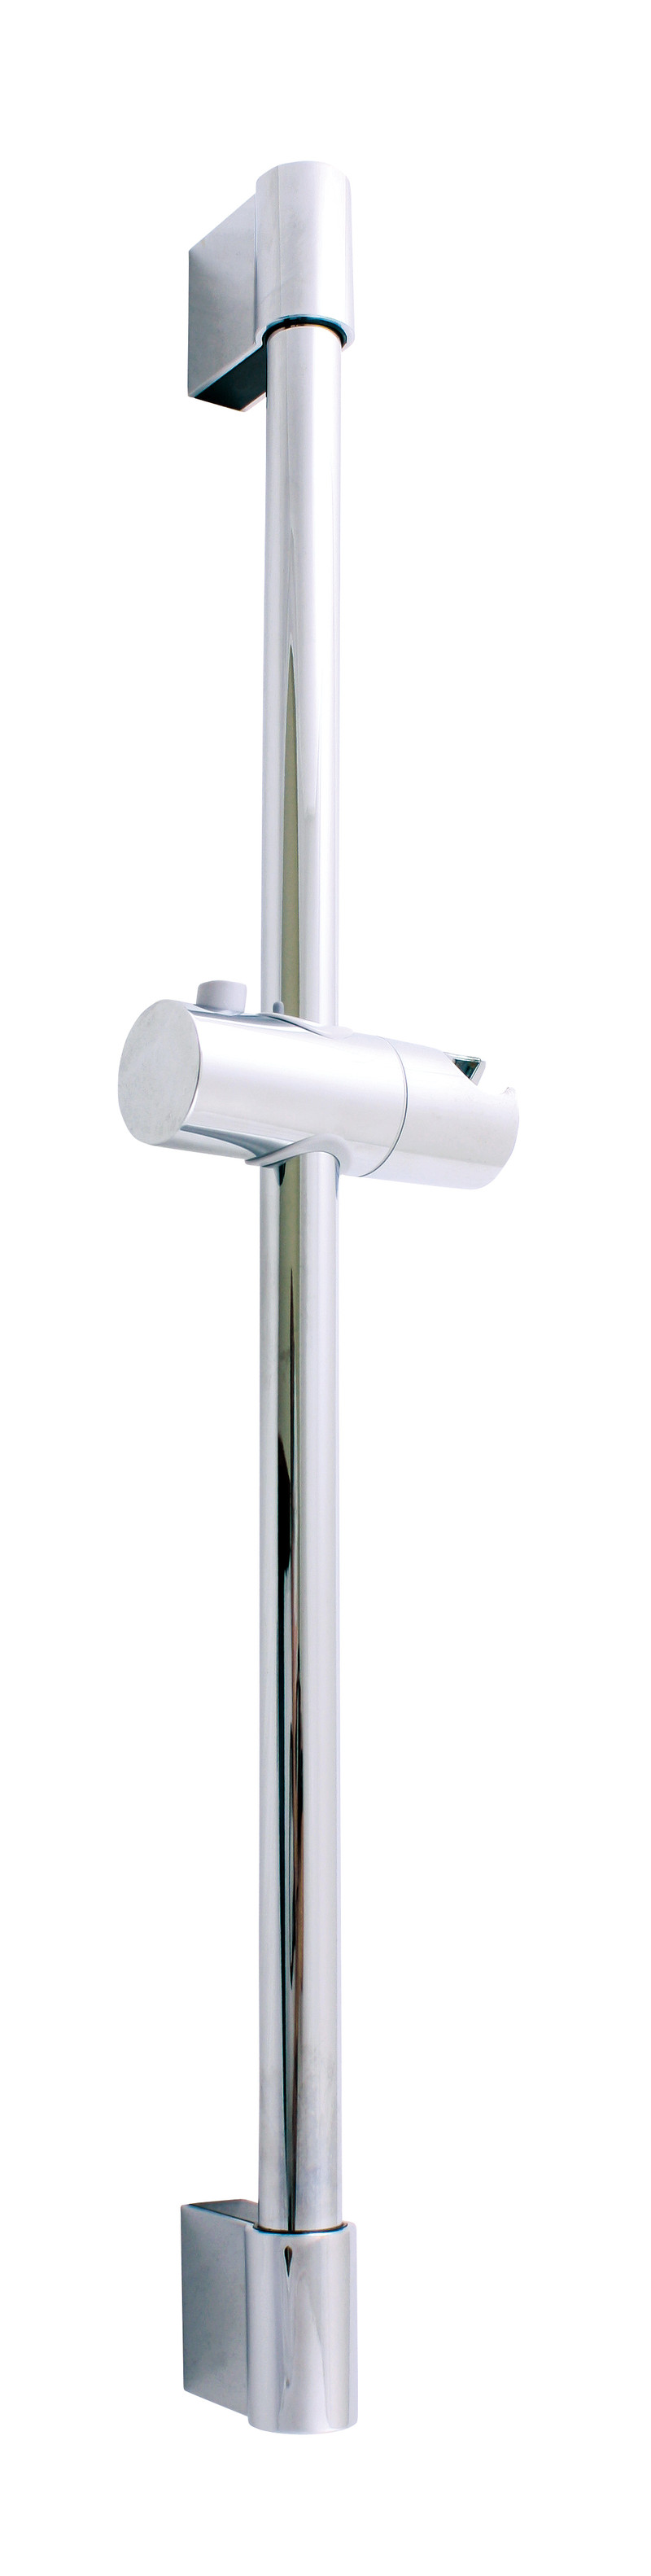 Shower bars with movable holder for hand shower